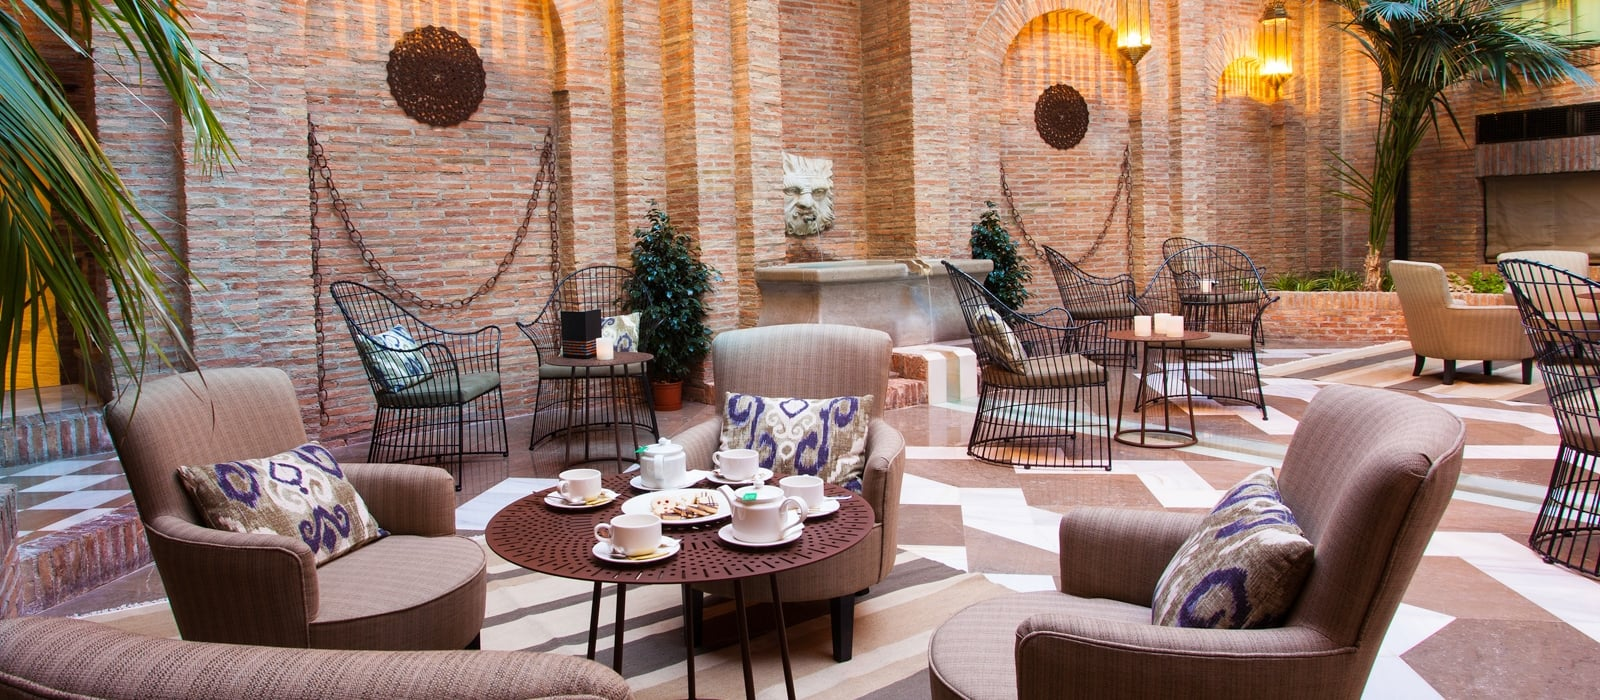 Book now and save! -10% - Vincci Hoteles